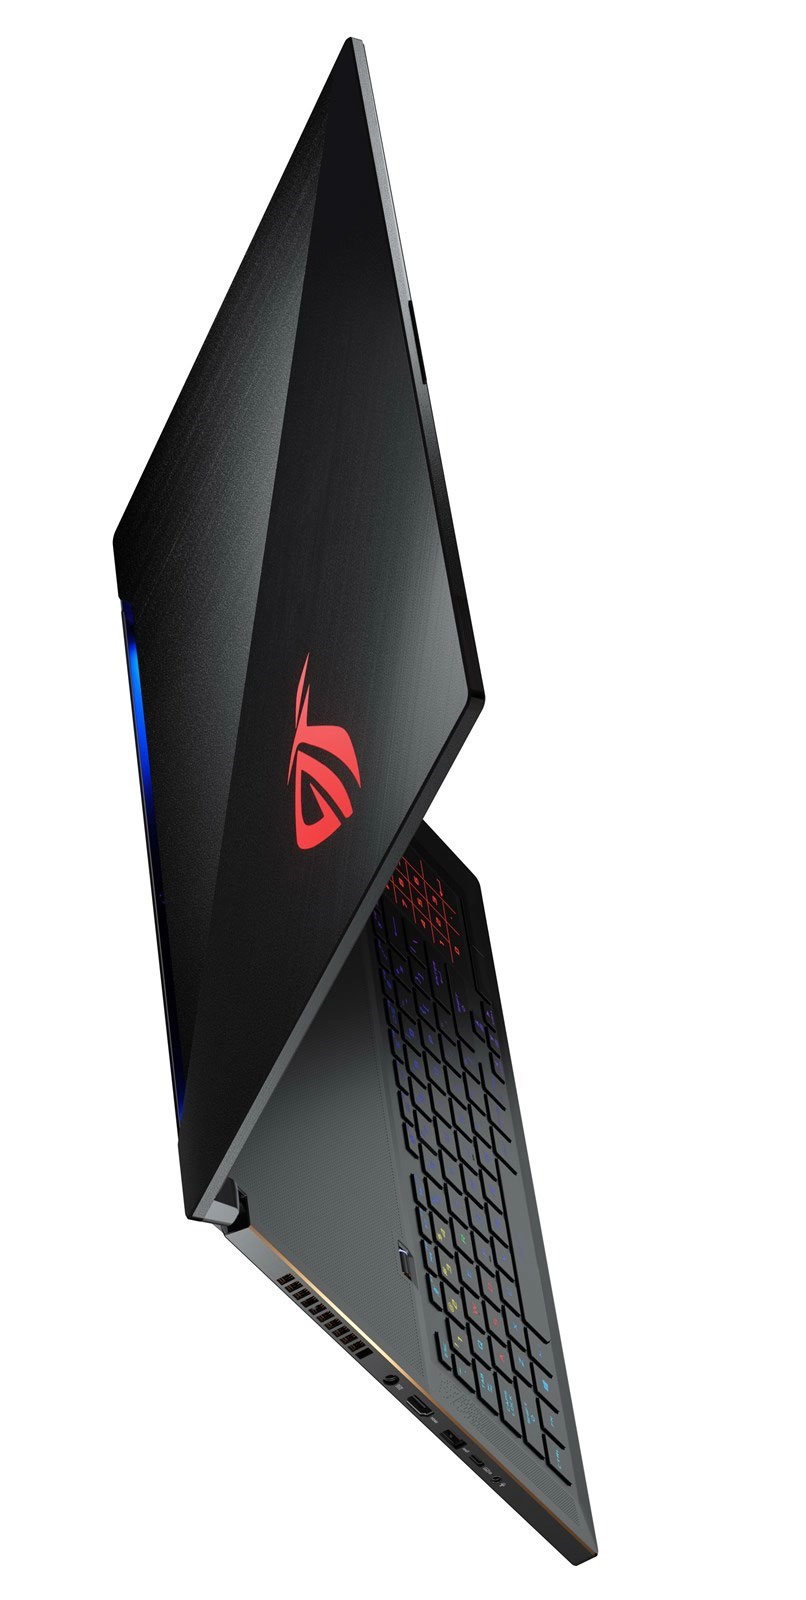 ASUS GX701GXR CORE i7 RTX 2080 GAMING LAPTOP DEAL